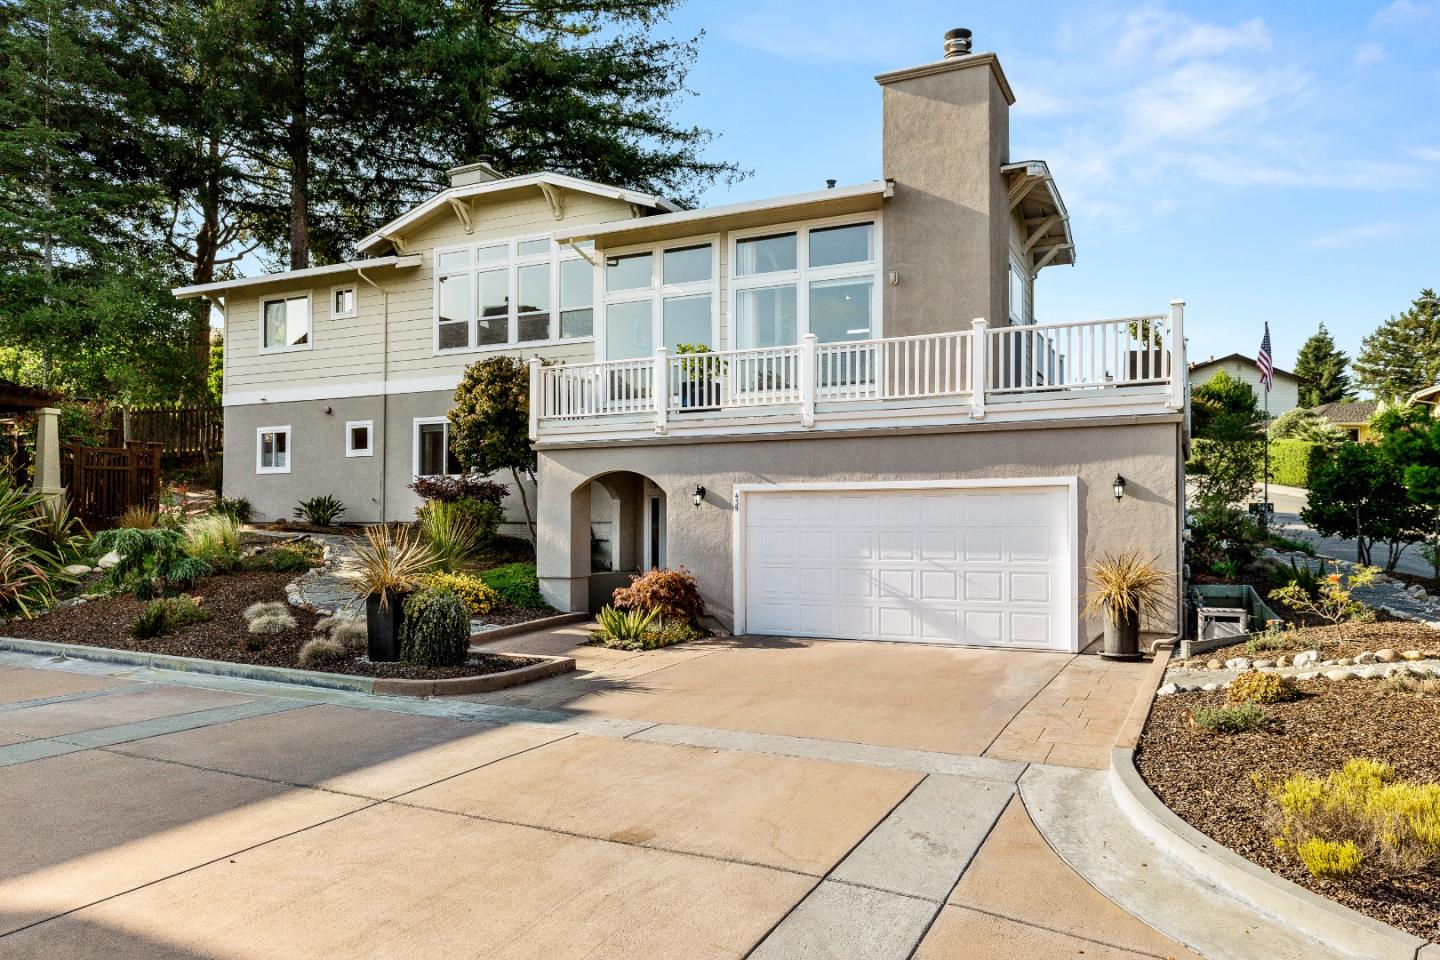 435 Isbel Drive Santa Cruz, CA 95060 - MLS #: ML81722607